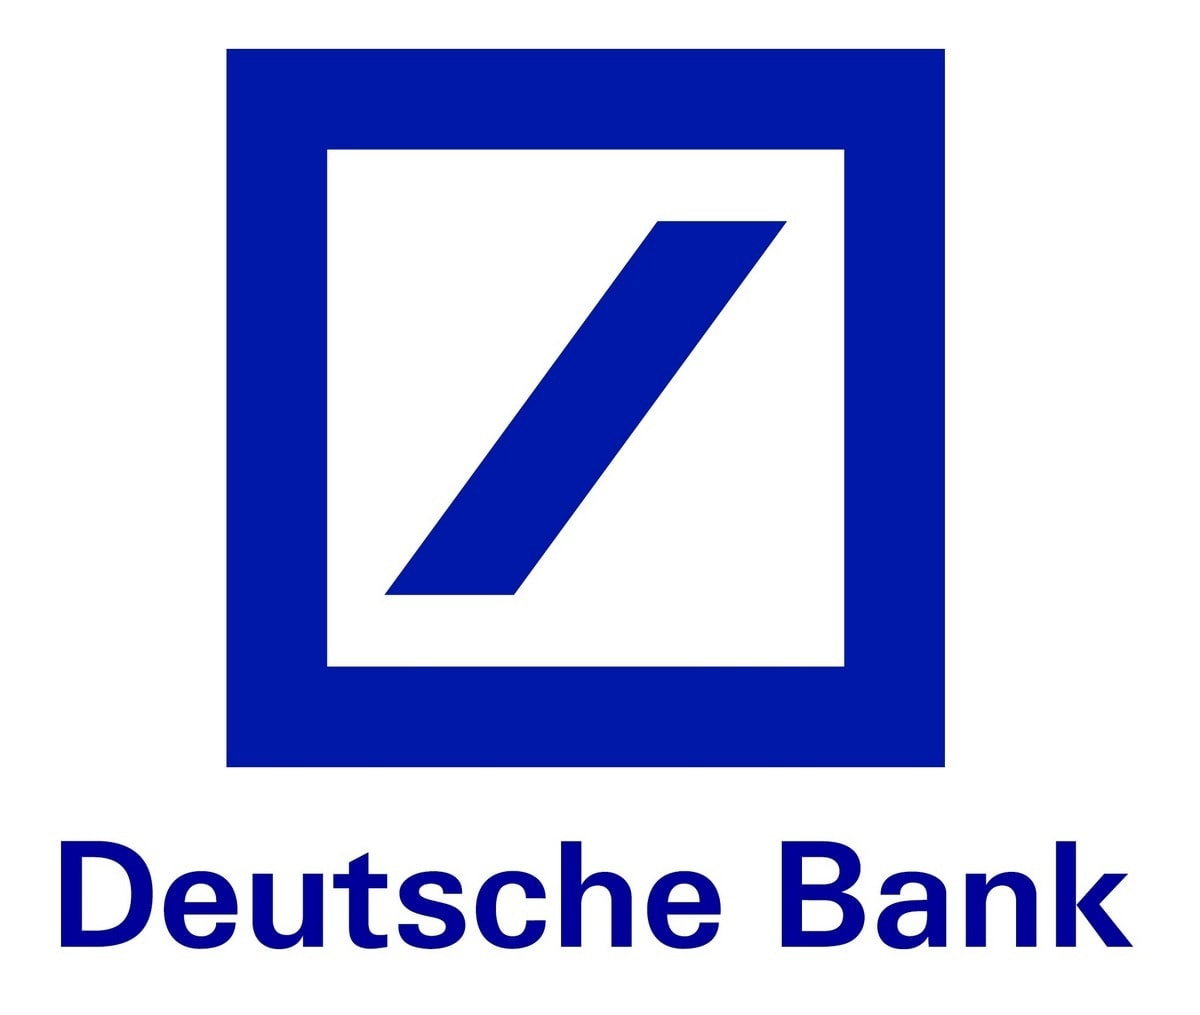 Marketing Mix of Deutsche Bank